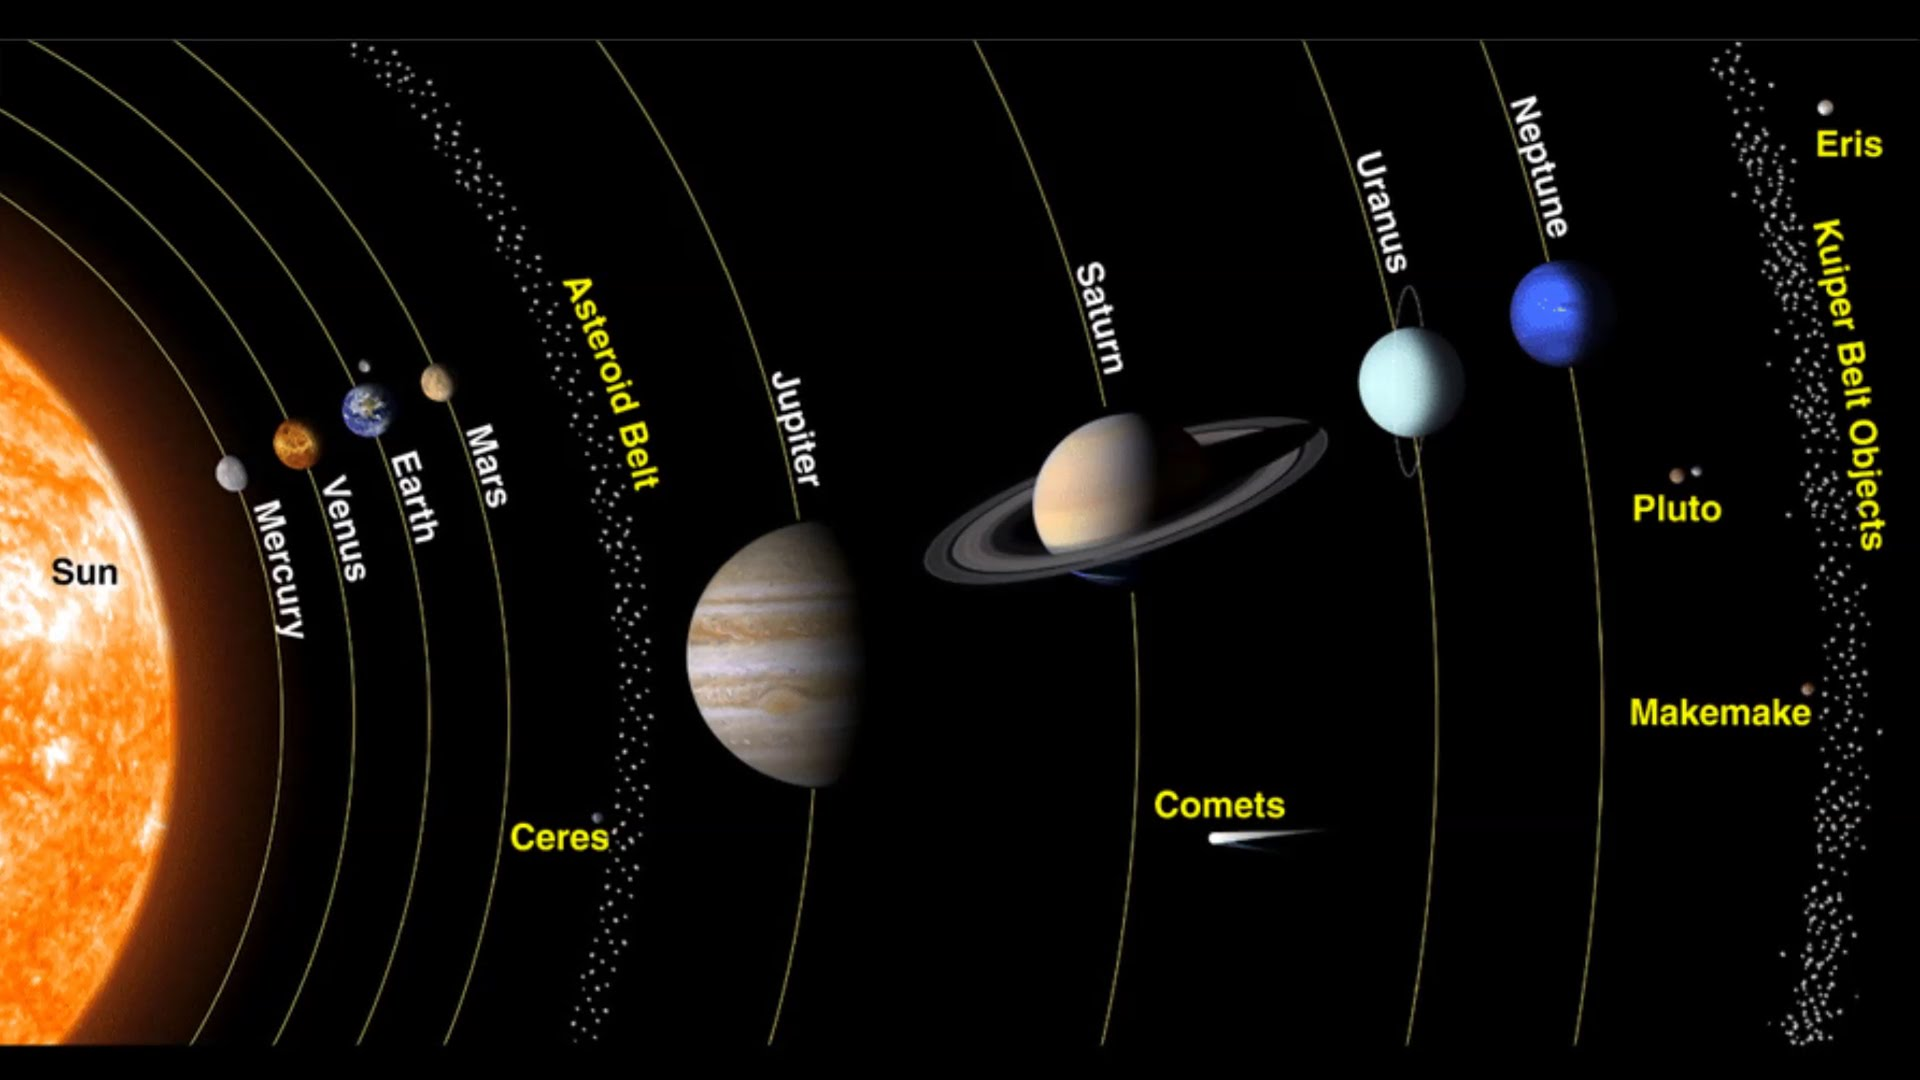 Asteroid Belt & Kuiper Belt within the Solar System | Image credit: ESA